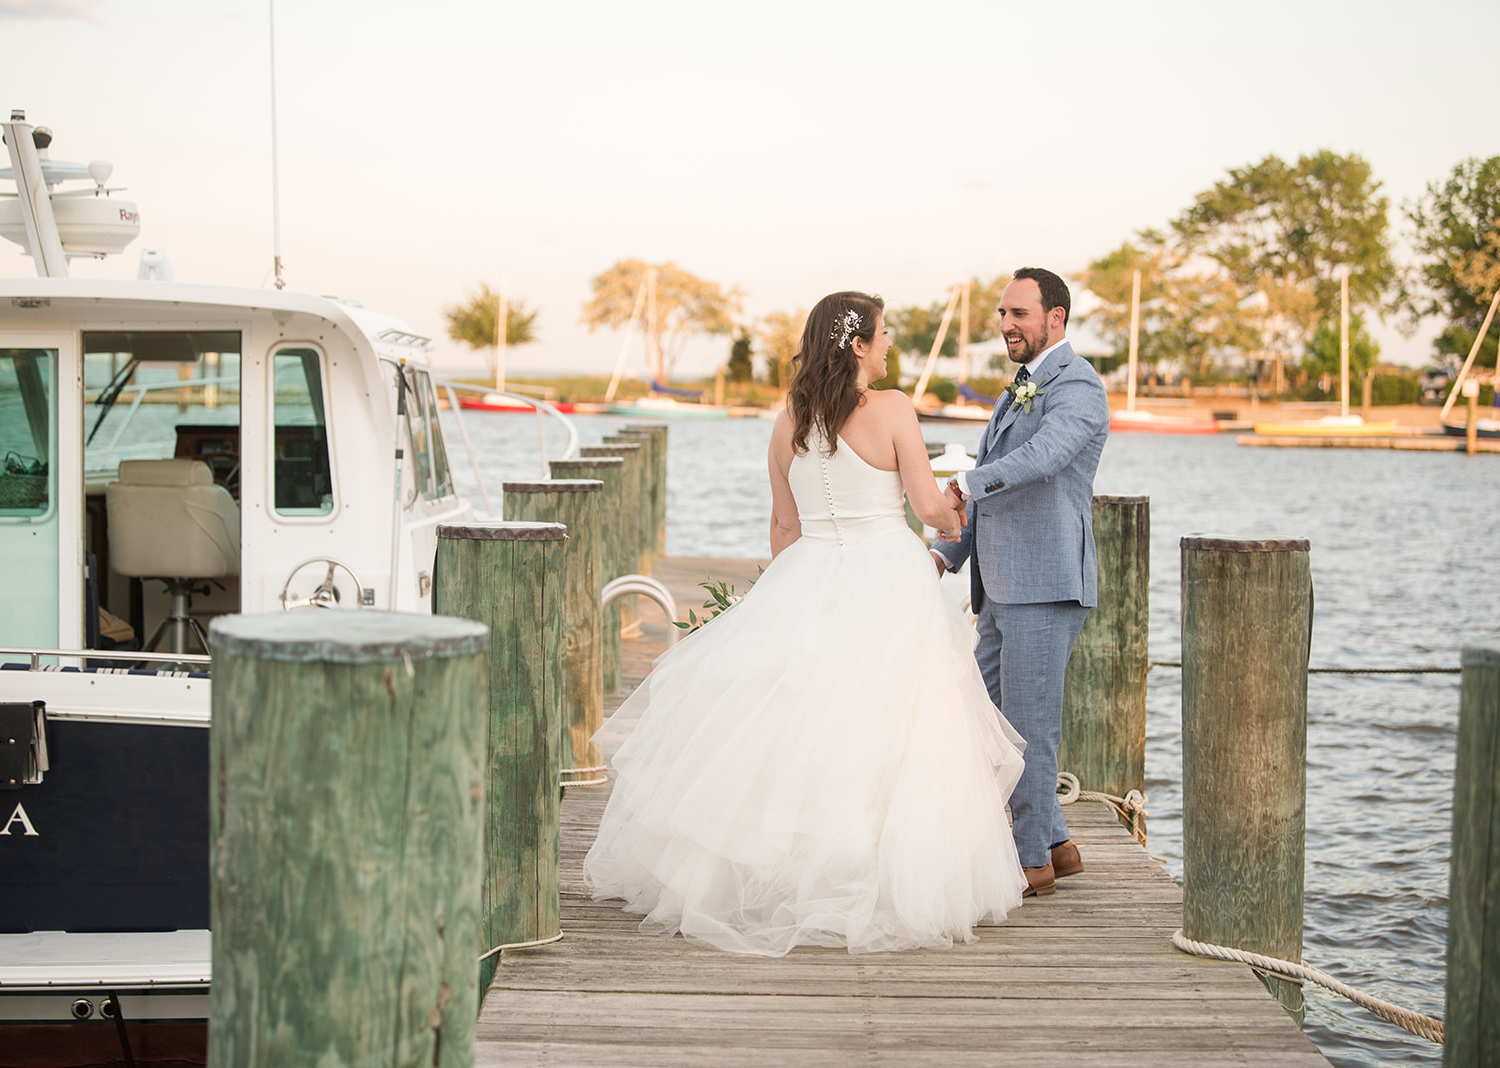 bride and groom sharing a romantic moment at the lake pier